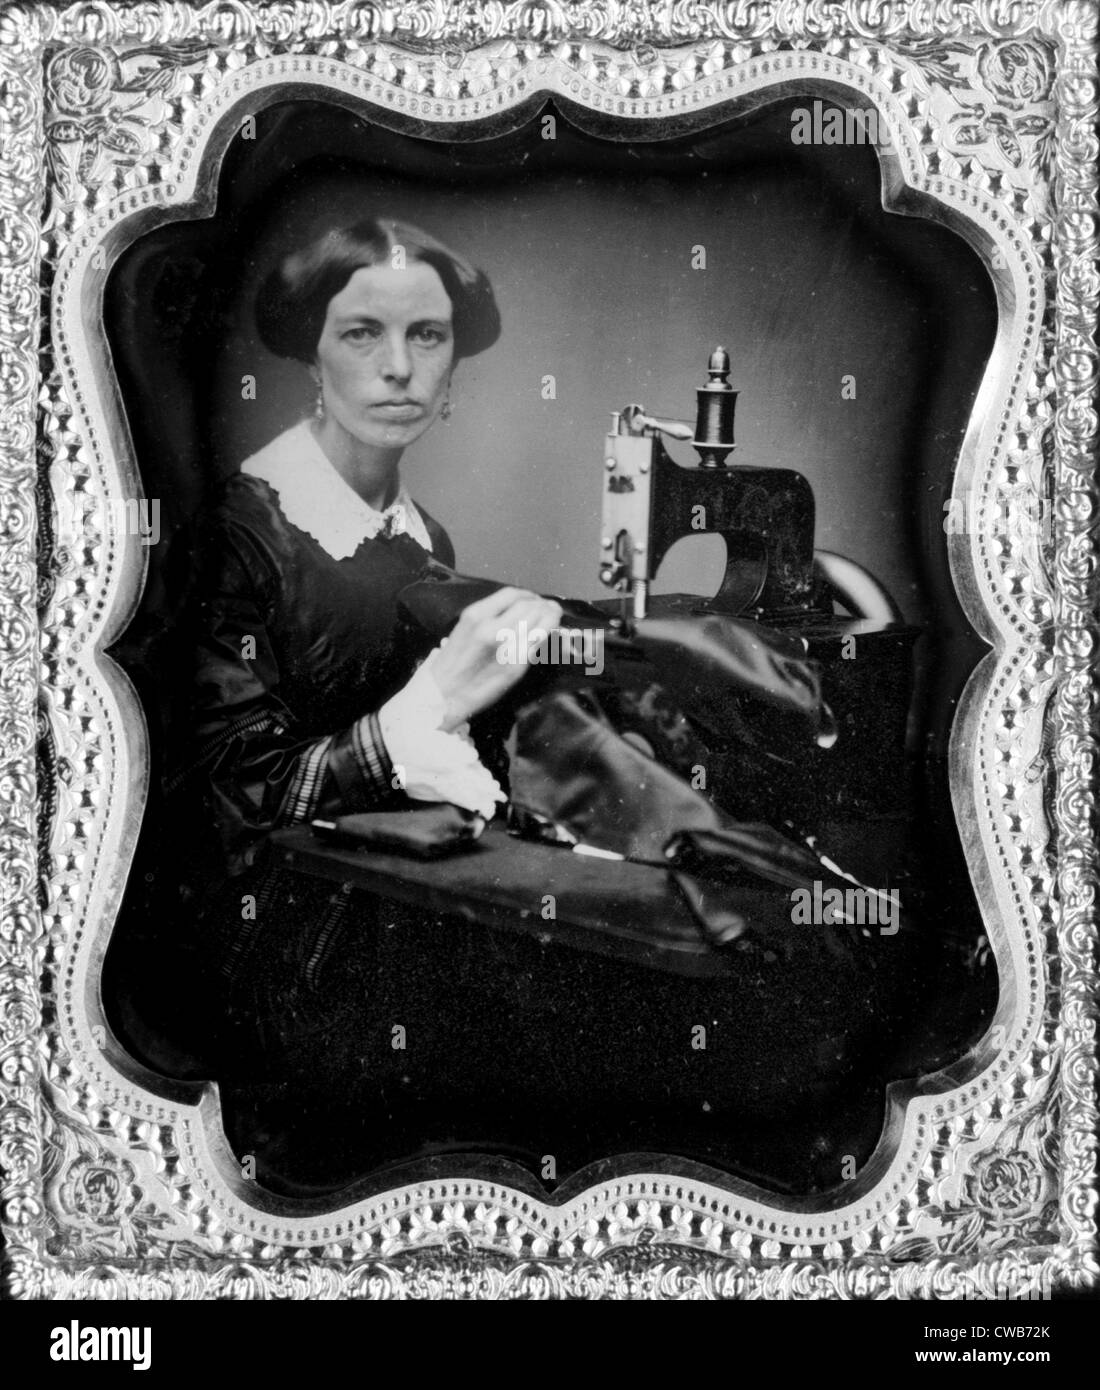 Occupational portrait of a woman working at a sewing machine, sixth-plate daguerreotype, circa 1853. - Stock Image